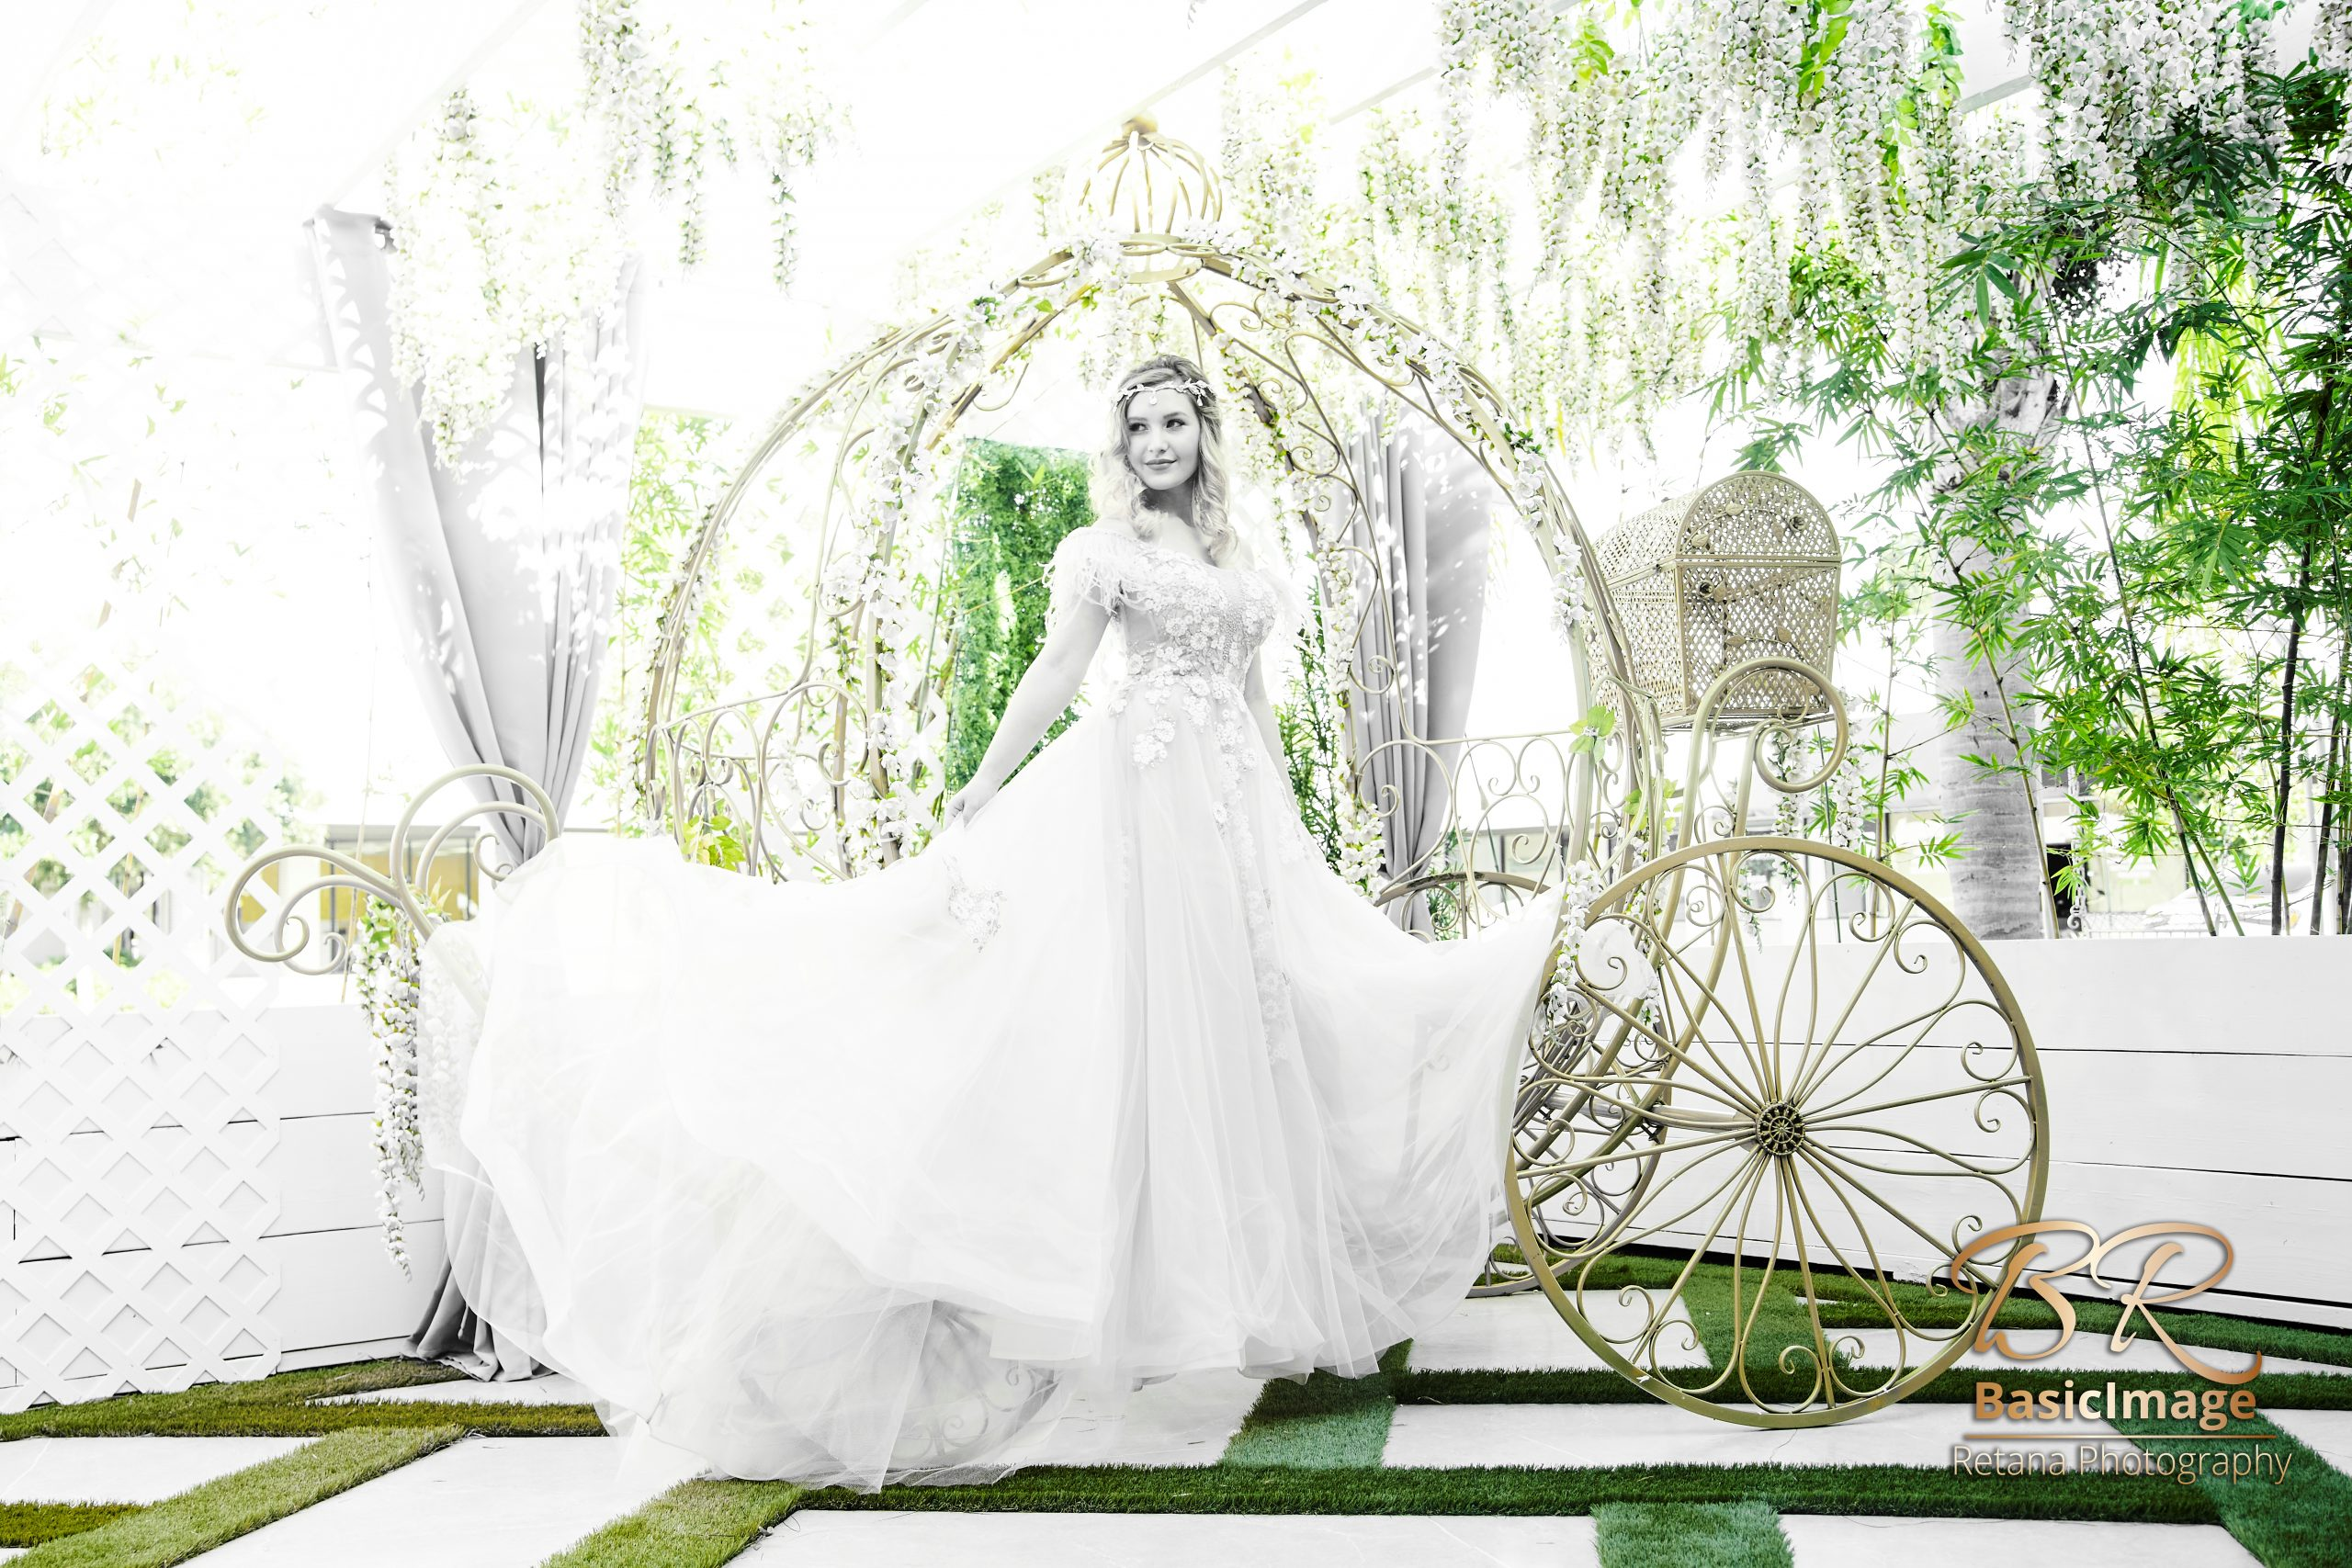 LeVenue garden model pose on carriage in black and white